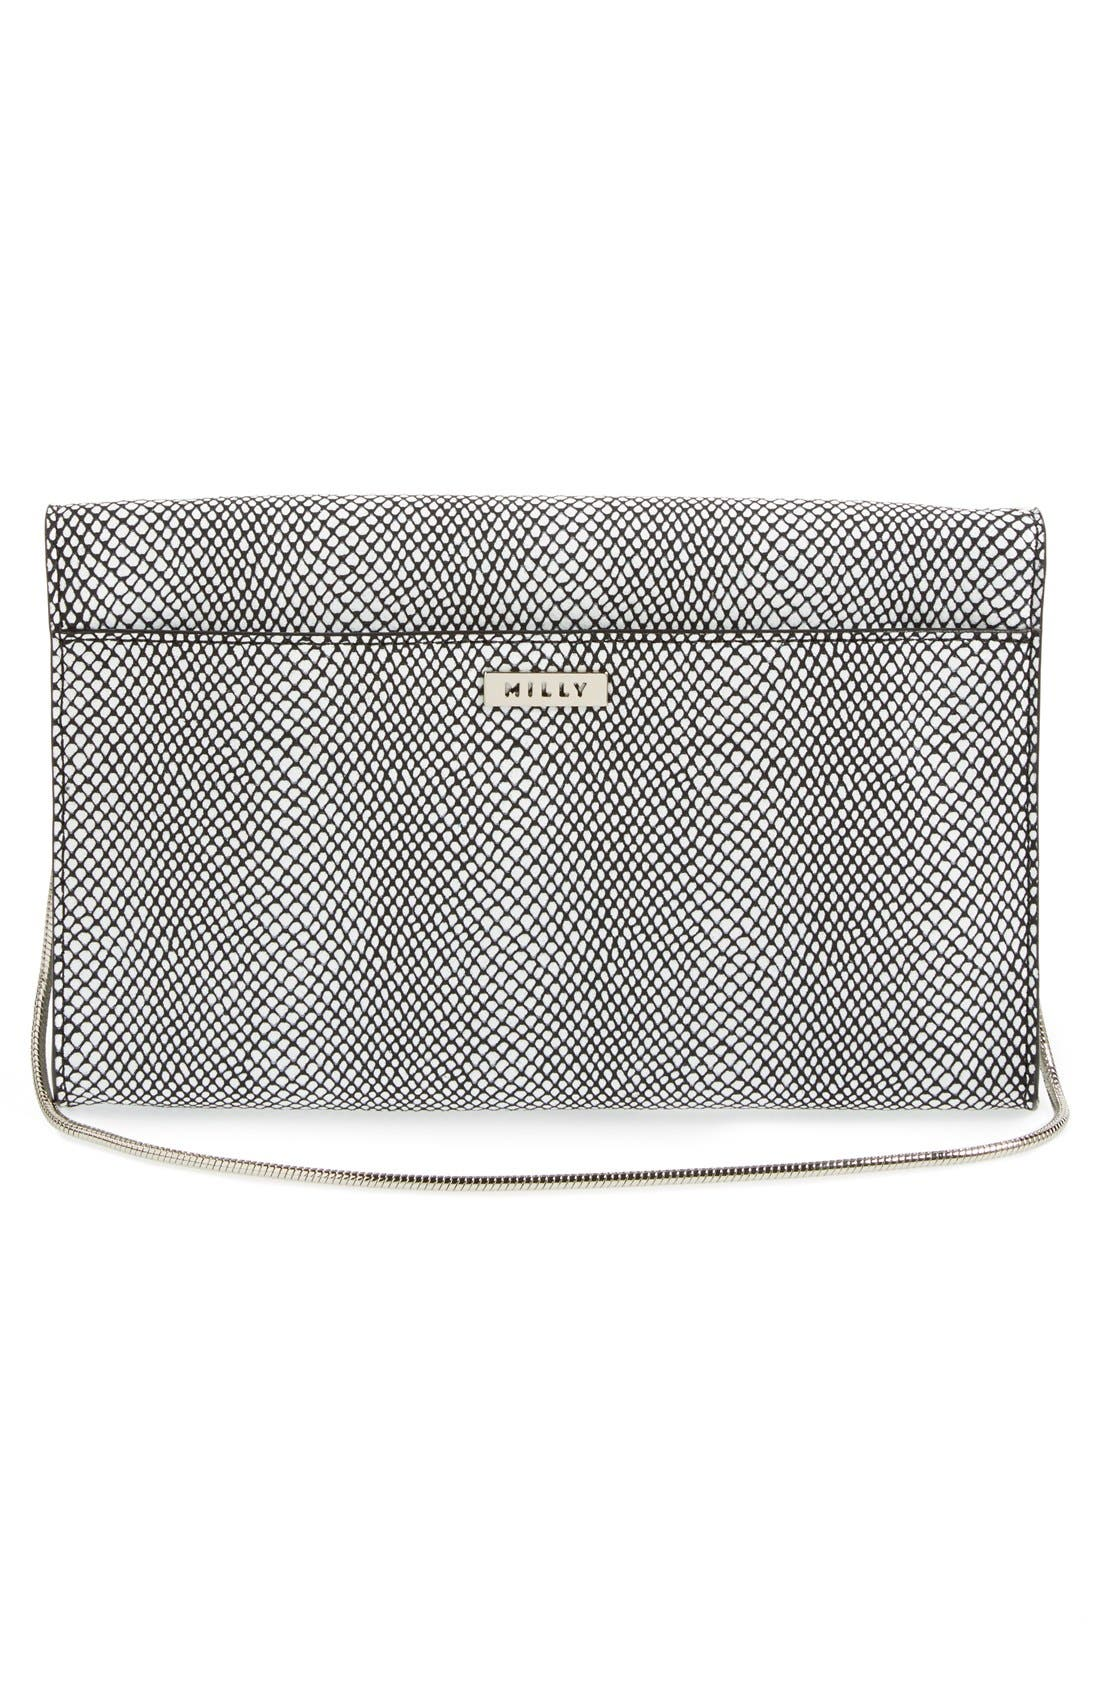 Alternate Image 3  - Milly 'Irving' Clutch